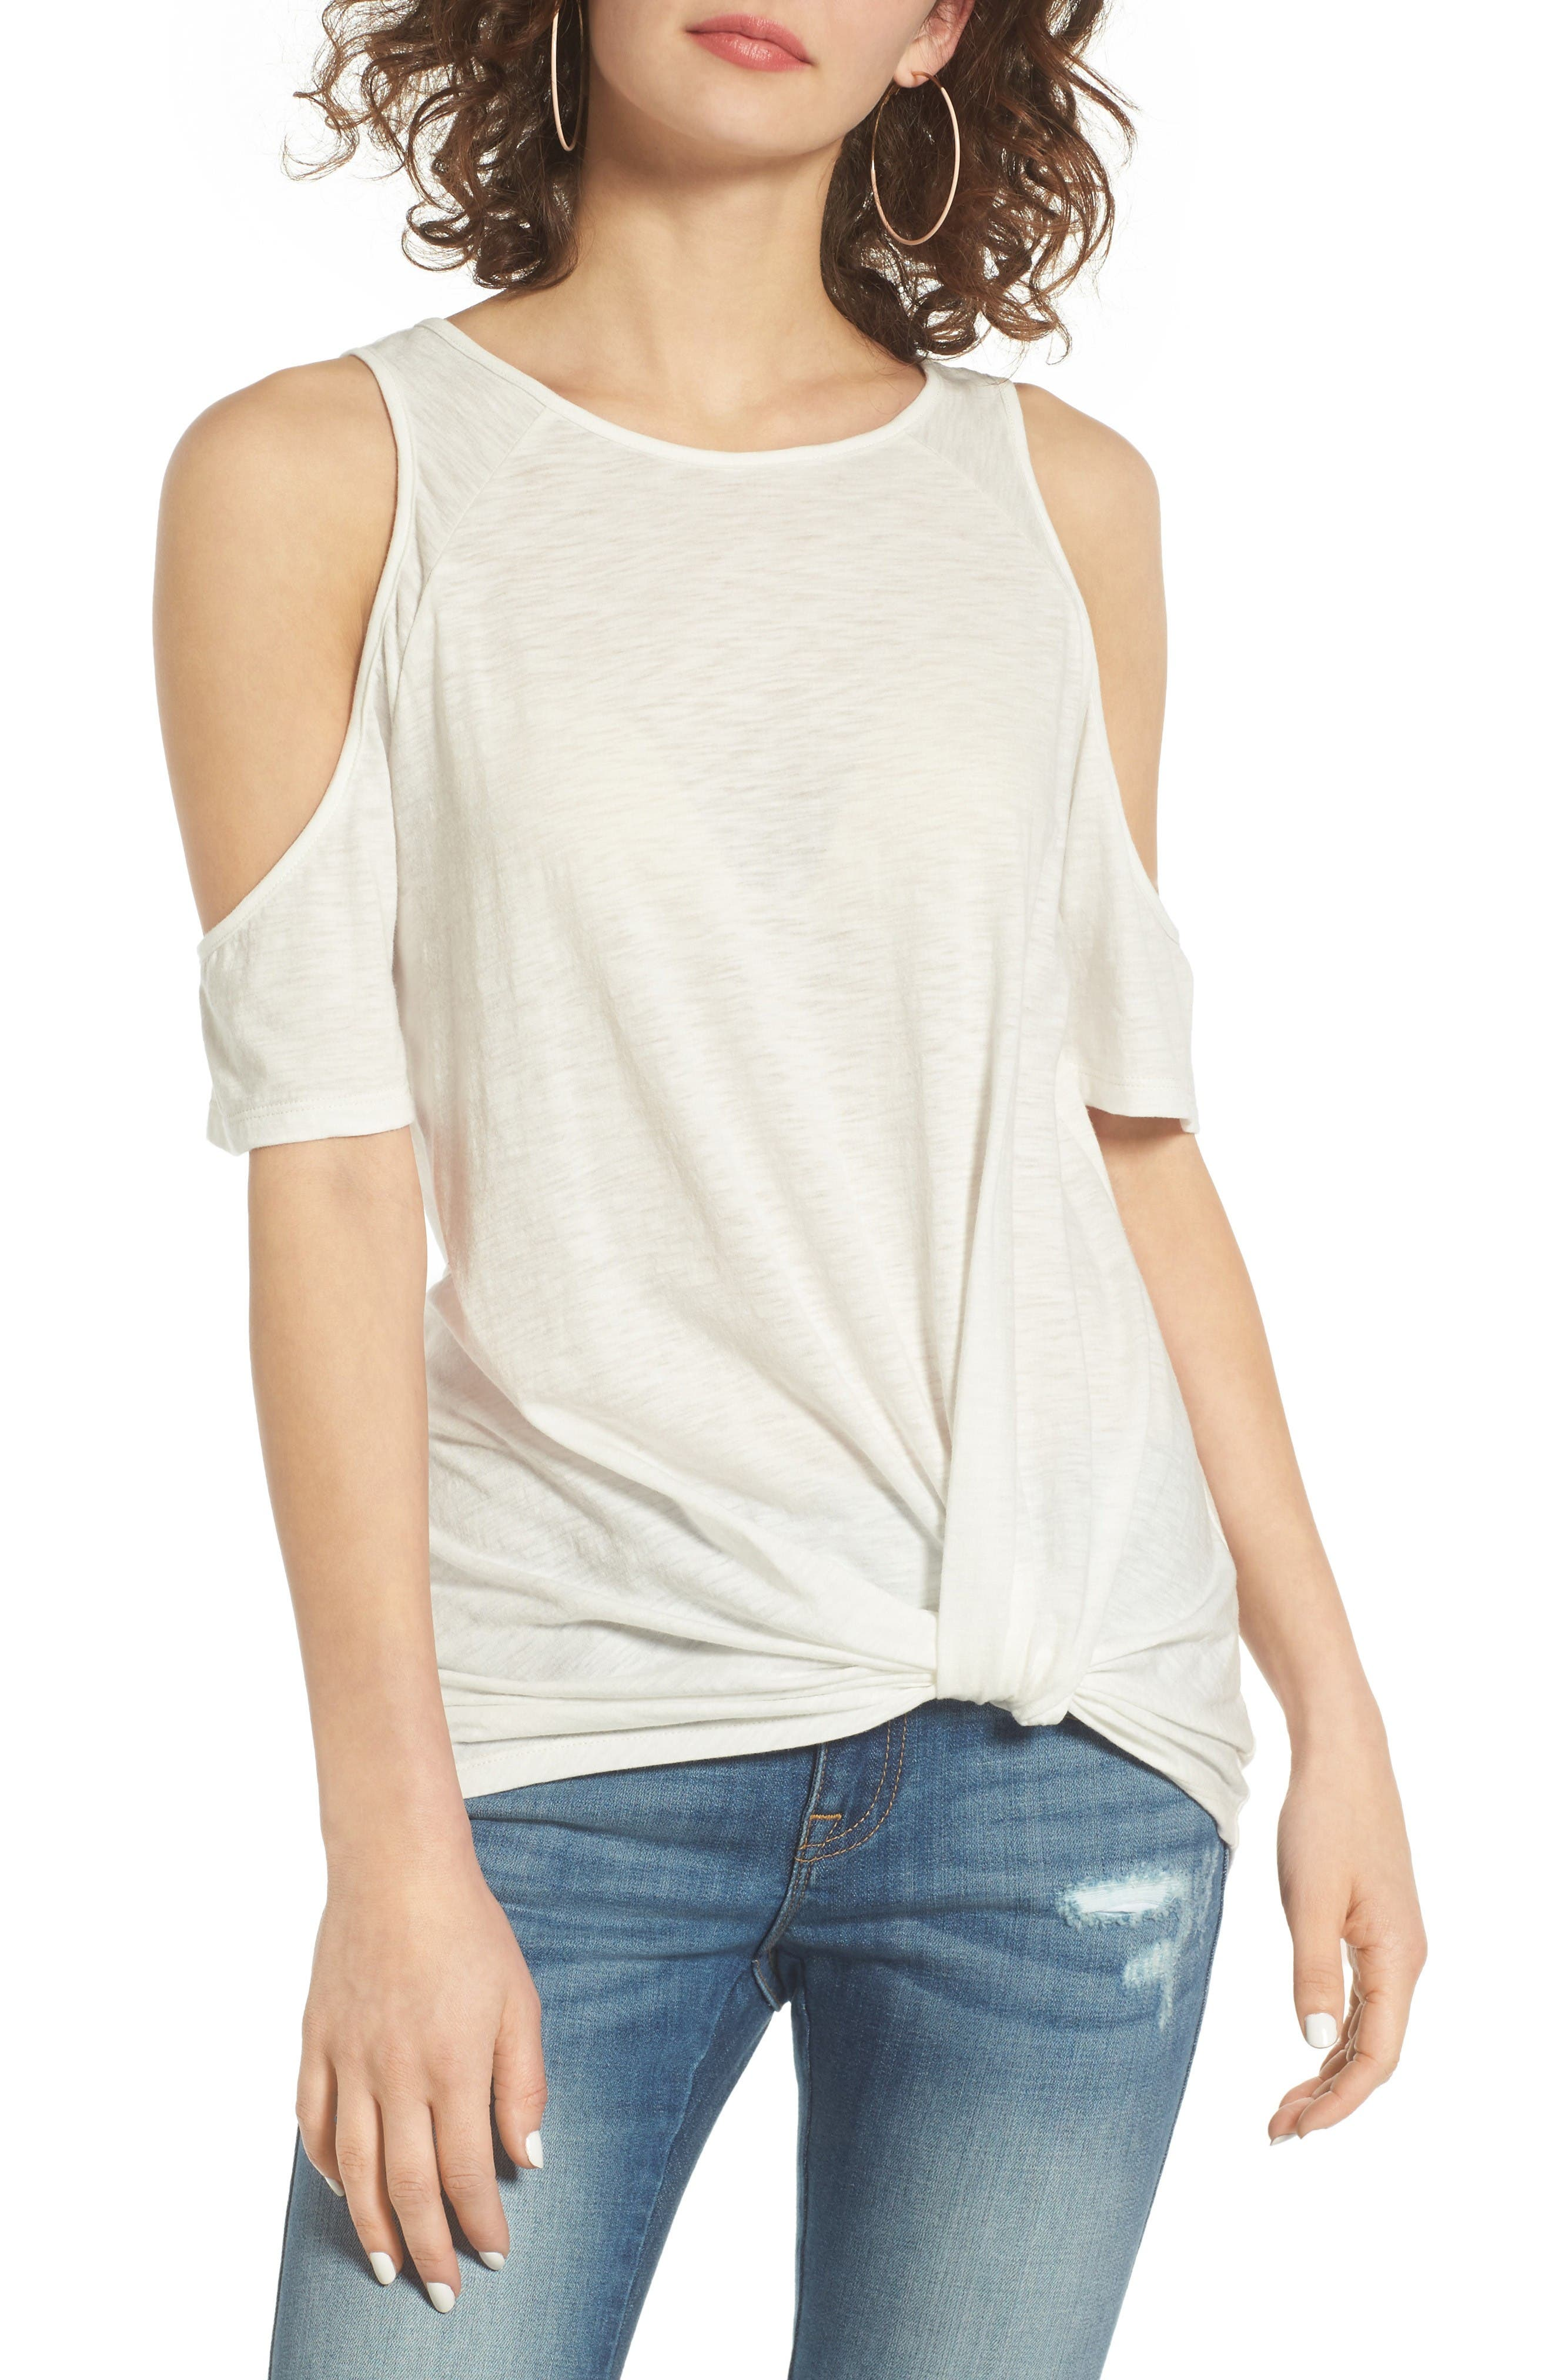 Alternate Image 1 Selected - BP. Twist Front Cold Shoulder Tee